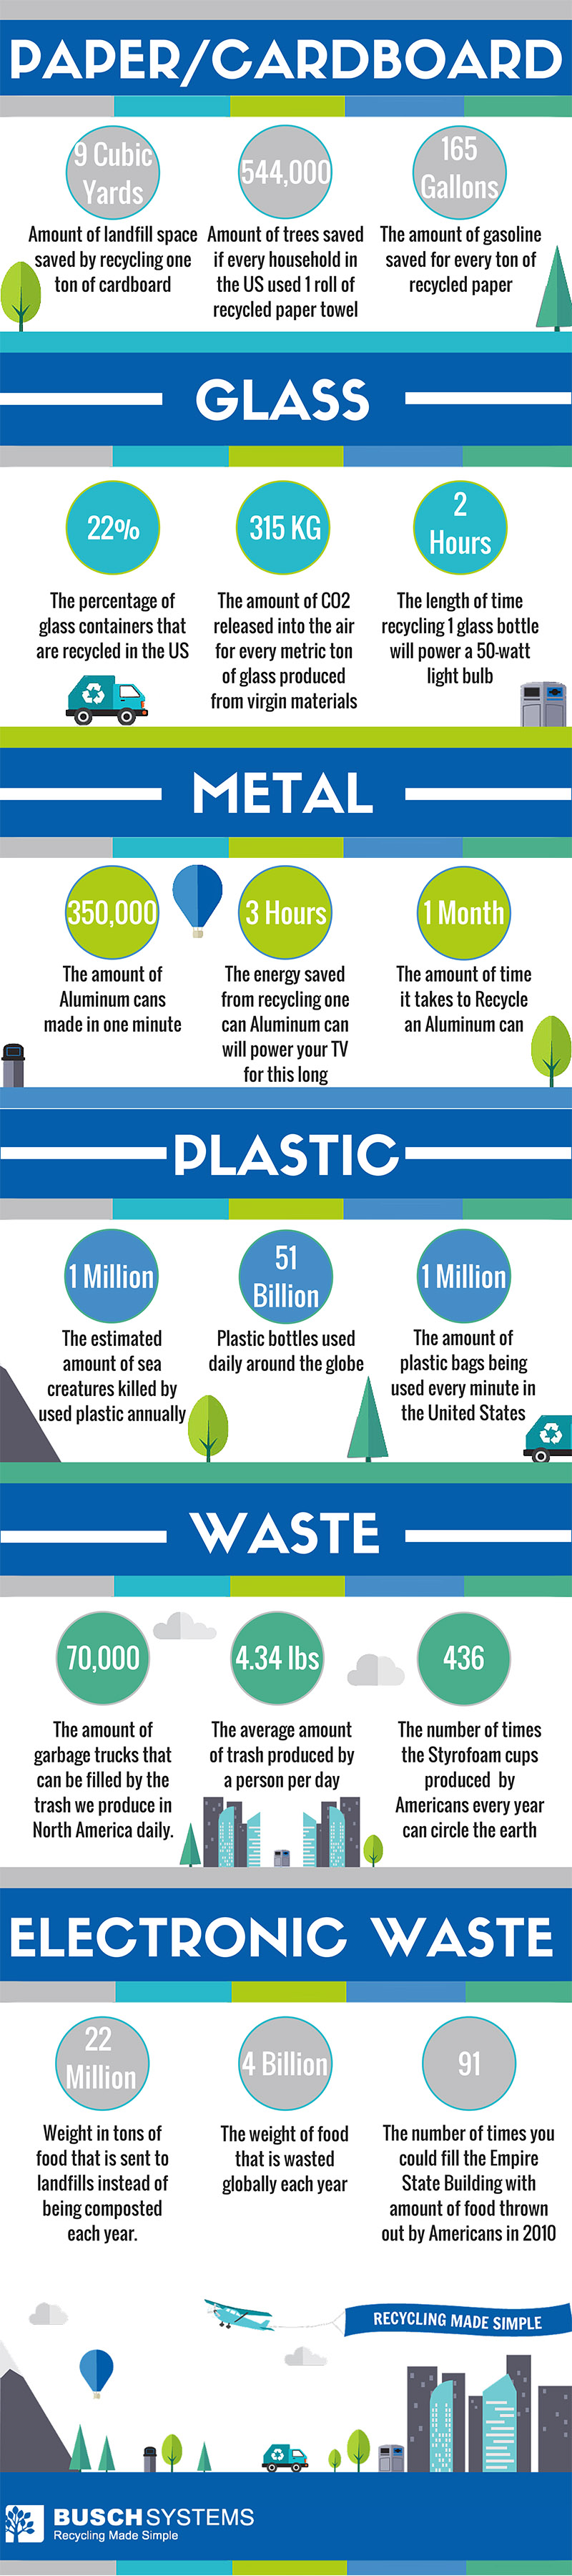 Recyc;ling by the Numbers